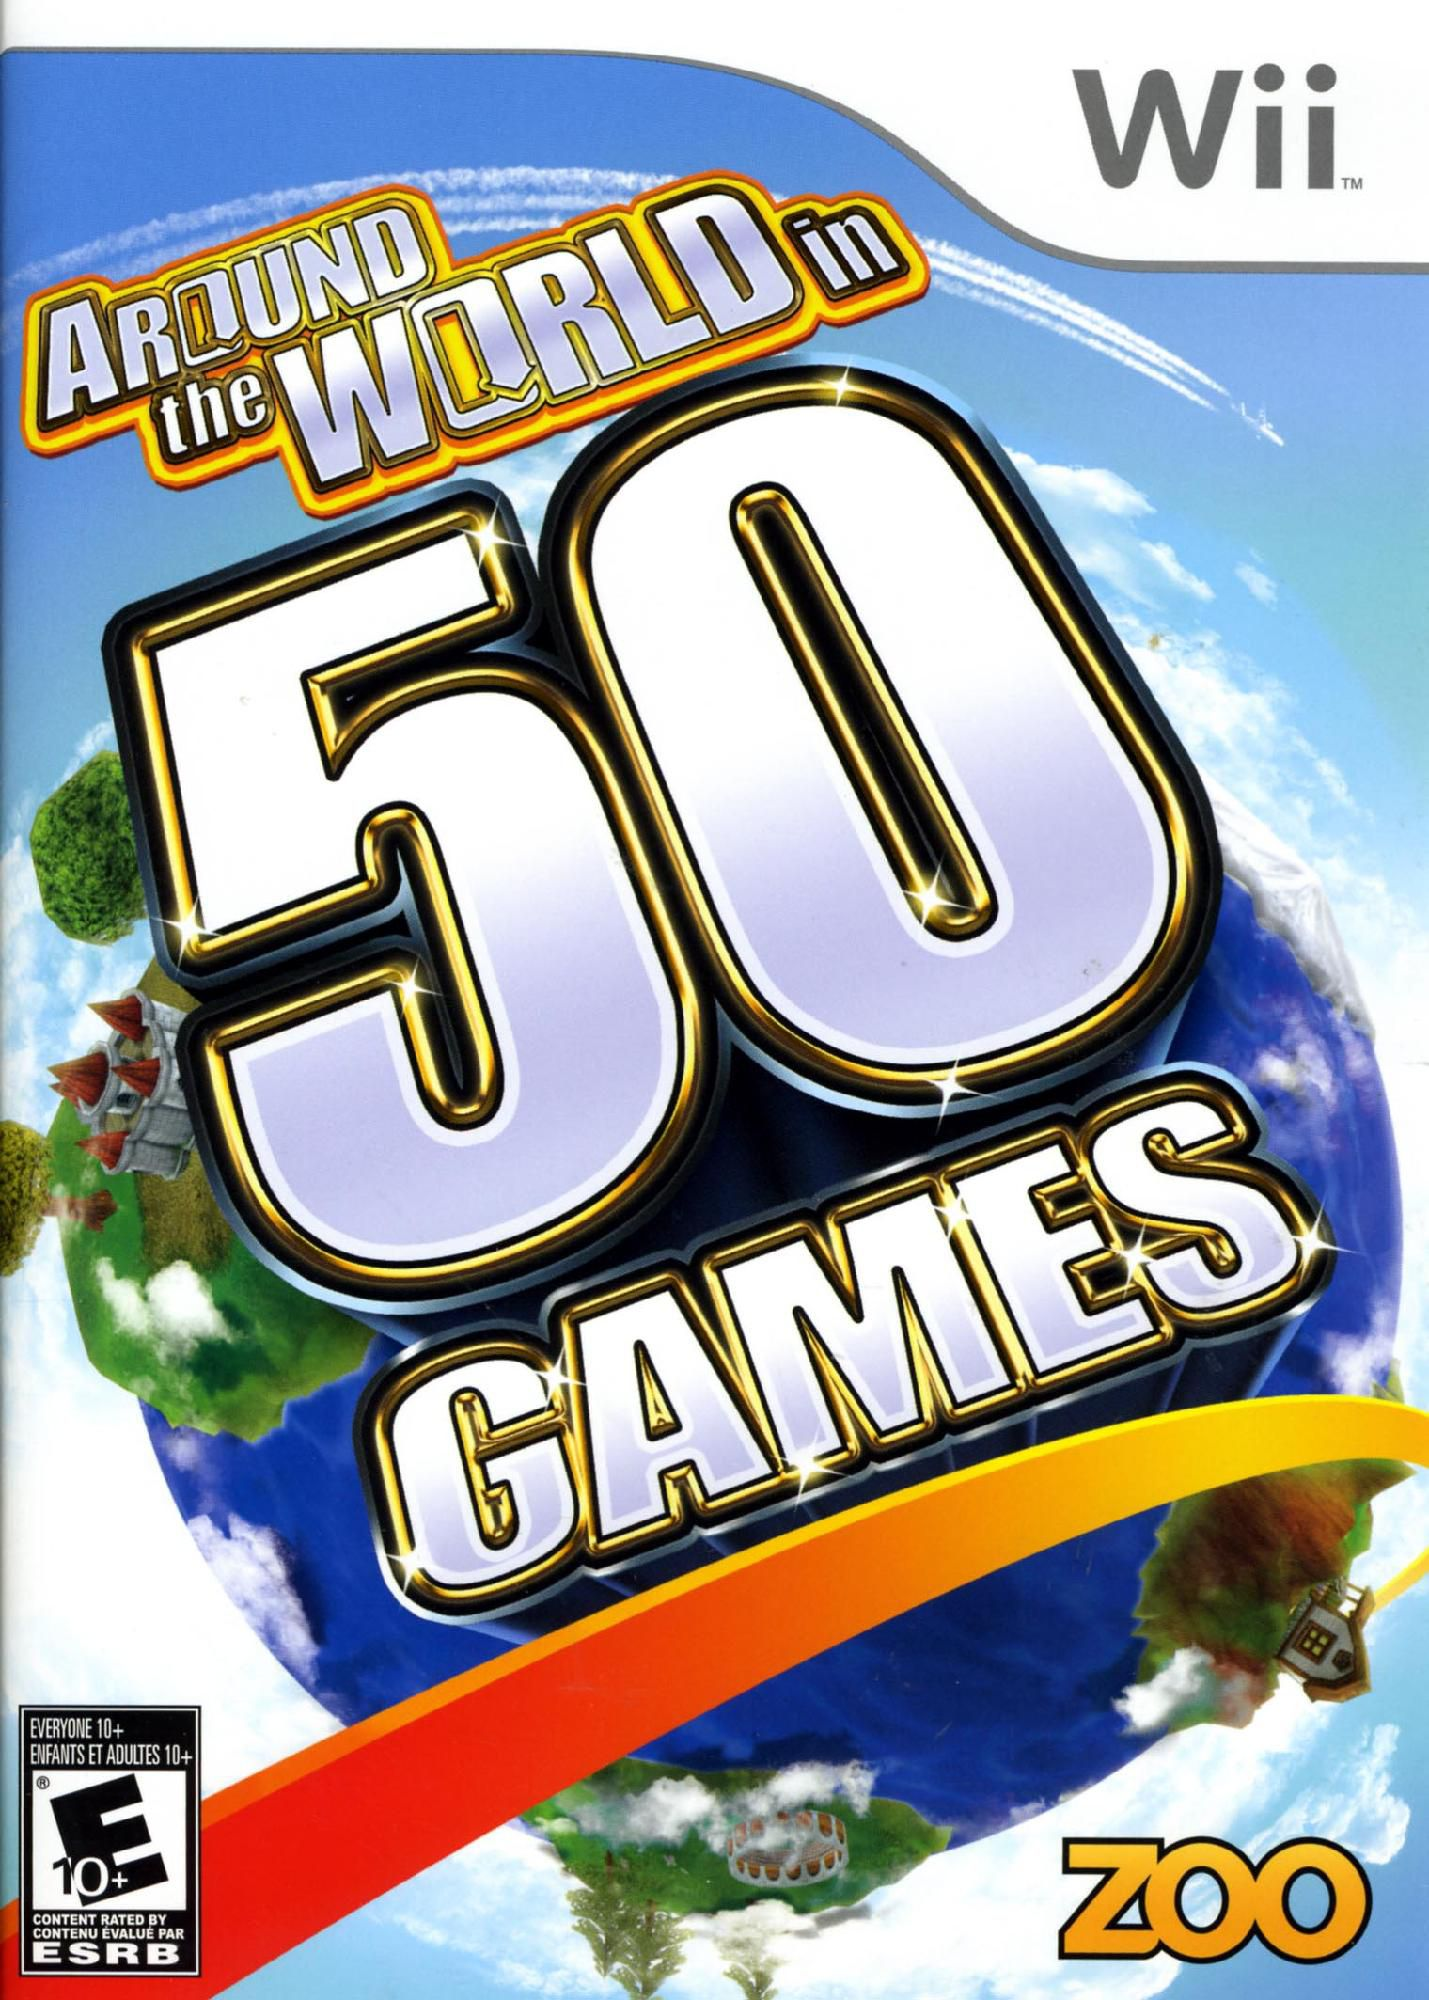 AROUND THE WORLD 50 GAMES WII